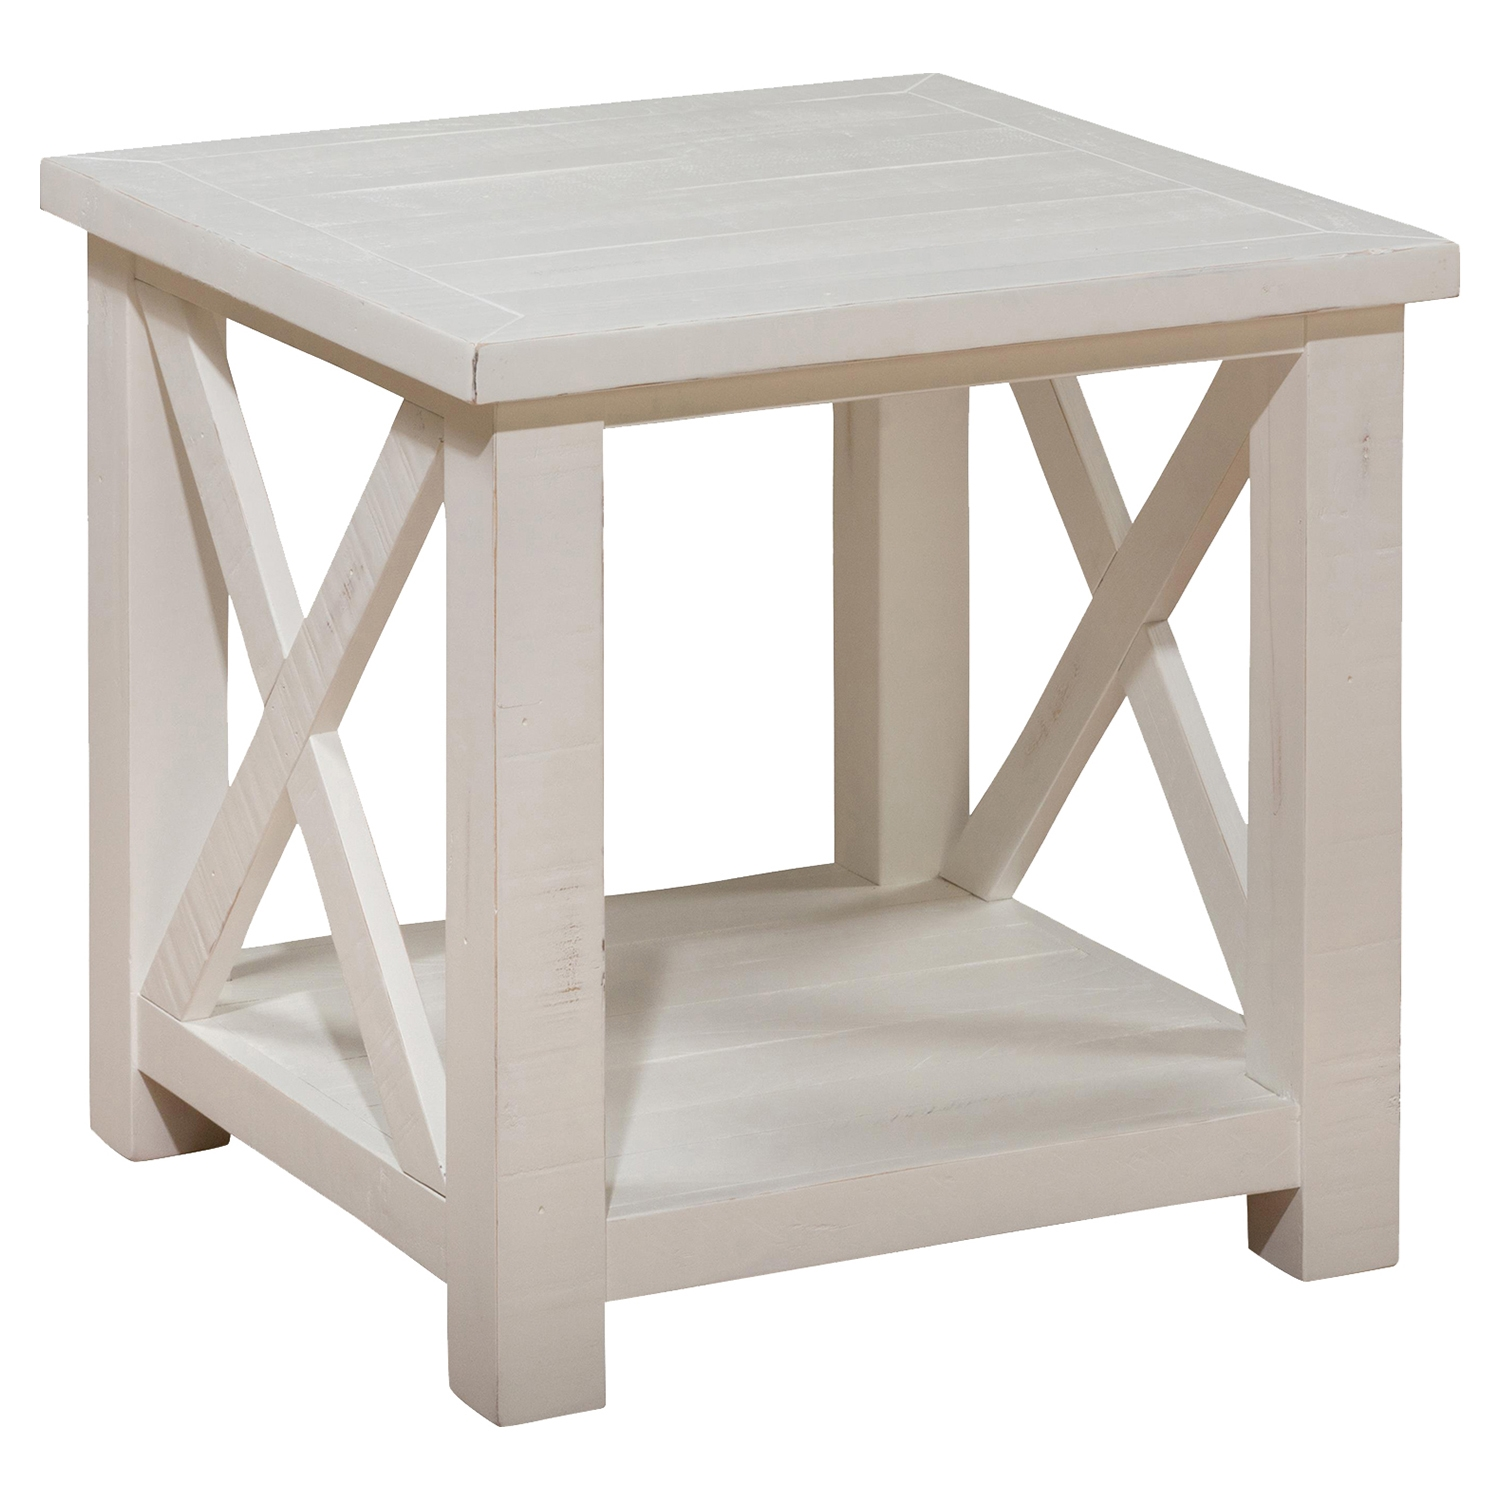 Madaket End Table - White, Reclaimed Pine - JOFR-649-3